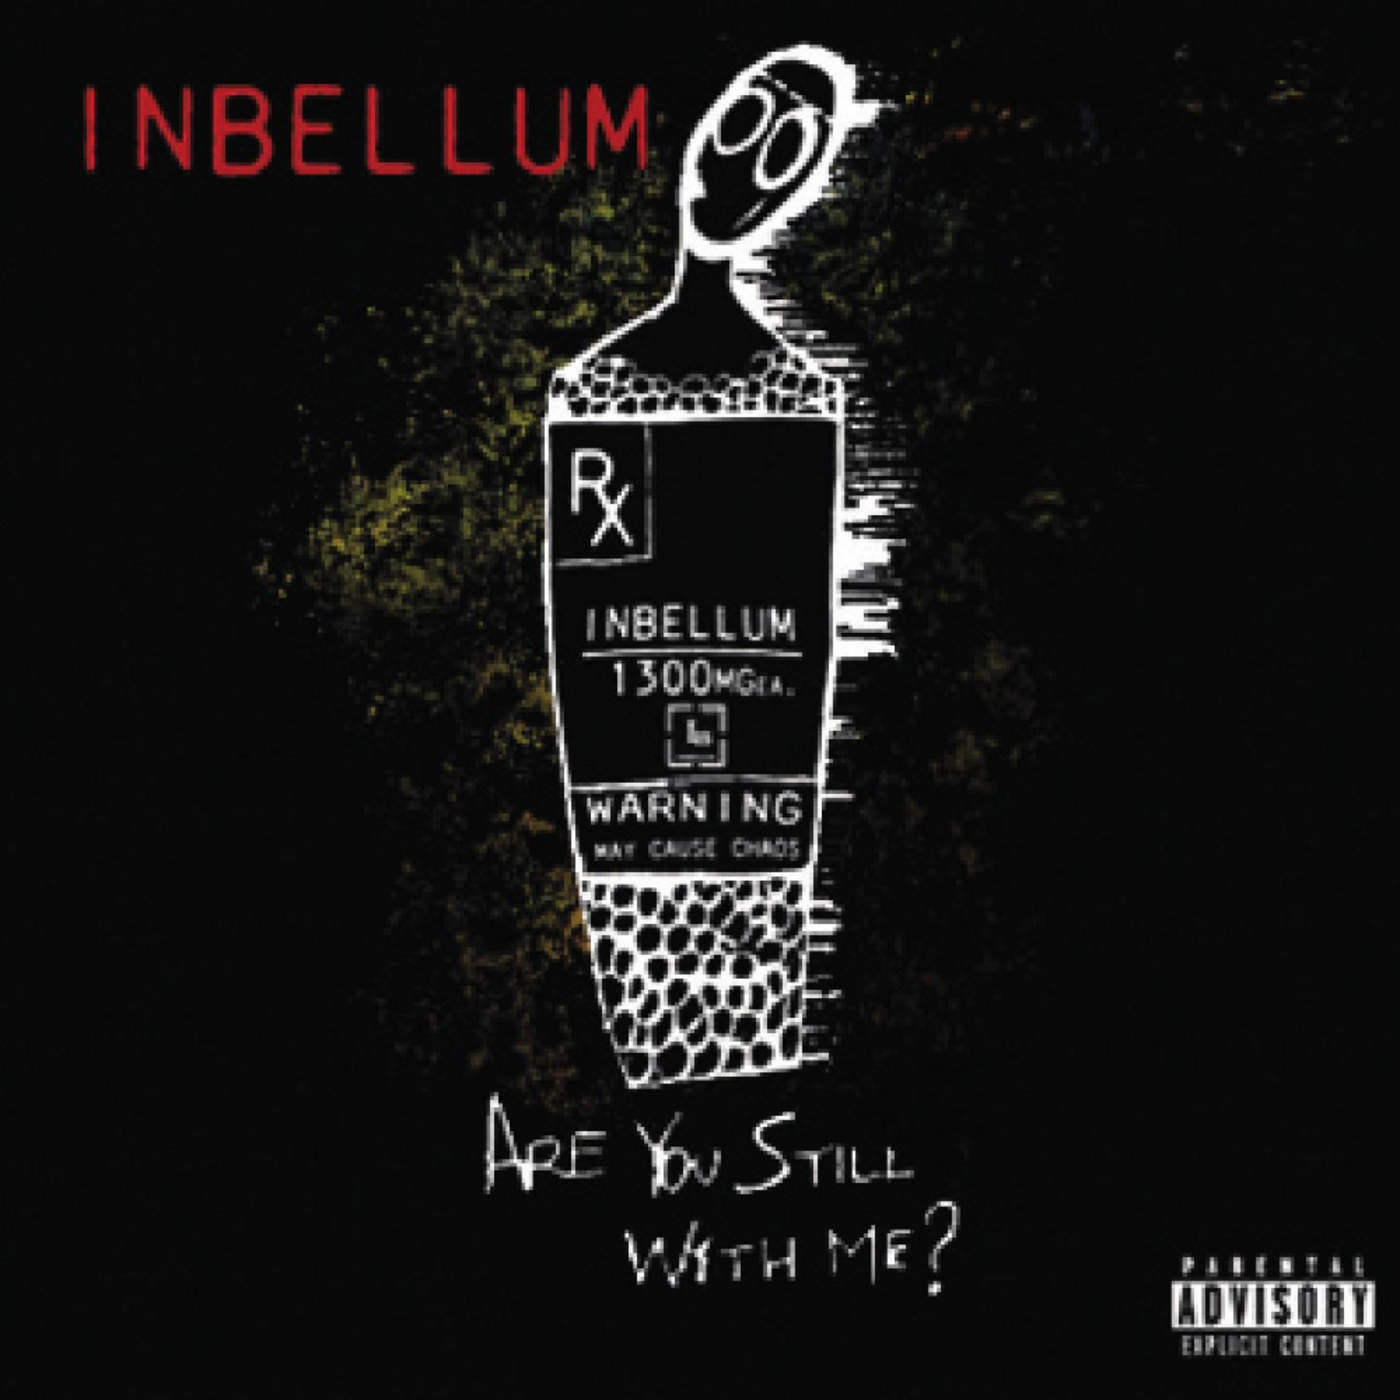 Inbellum - Are You Still with Me?